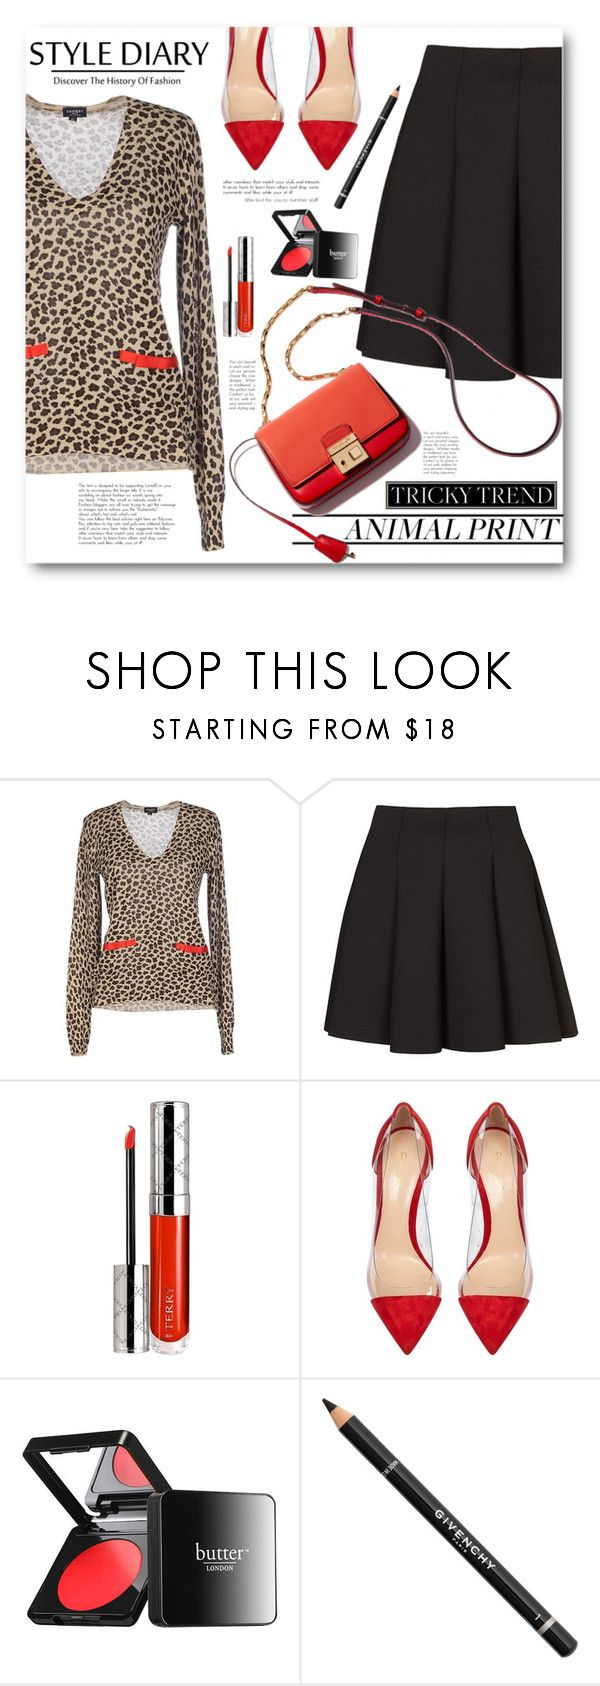 """""""Pleated Skirt & Animal Print Jumper"""" by brendariley-1 ❤ liked on Polyvore featuring Snobby Sheep, Topshop, By Terry, Gianvito Rossi, Butter London and Givenchy"""